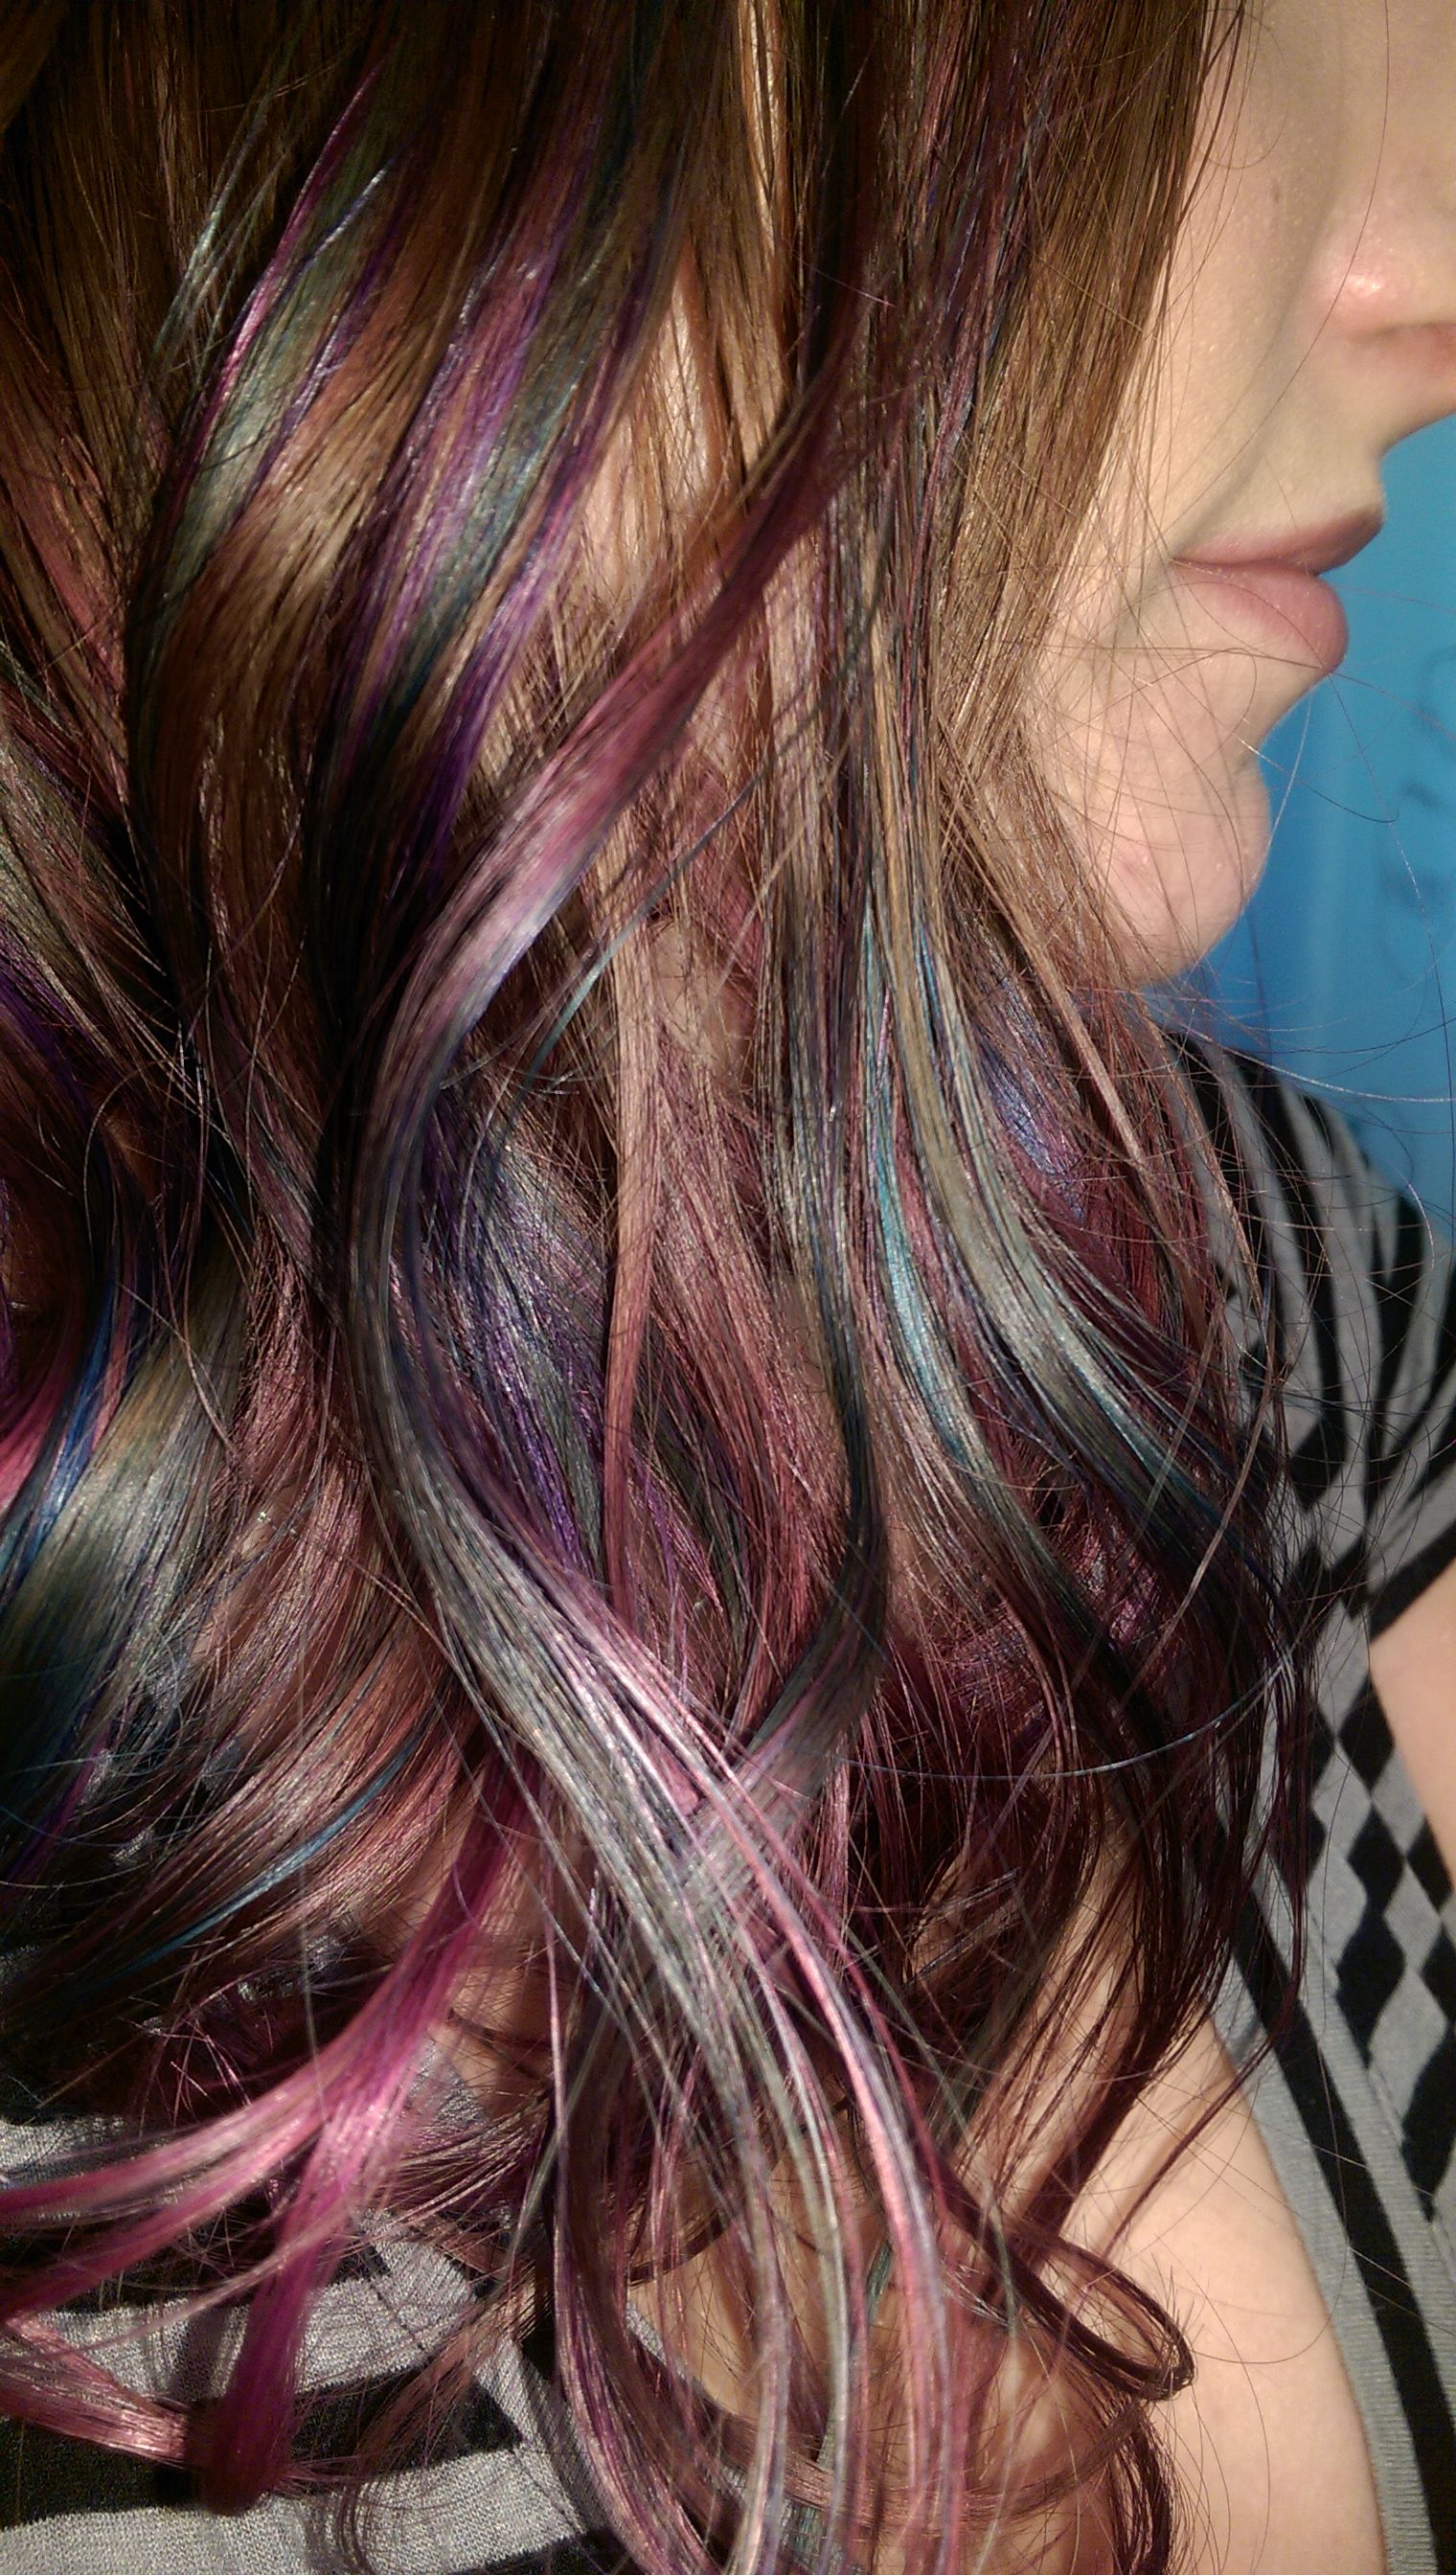 "oil slick"" multi-colored hair dyed and cut a-line styled. 